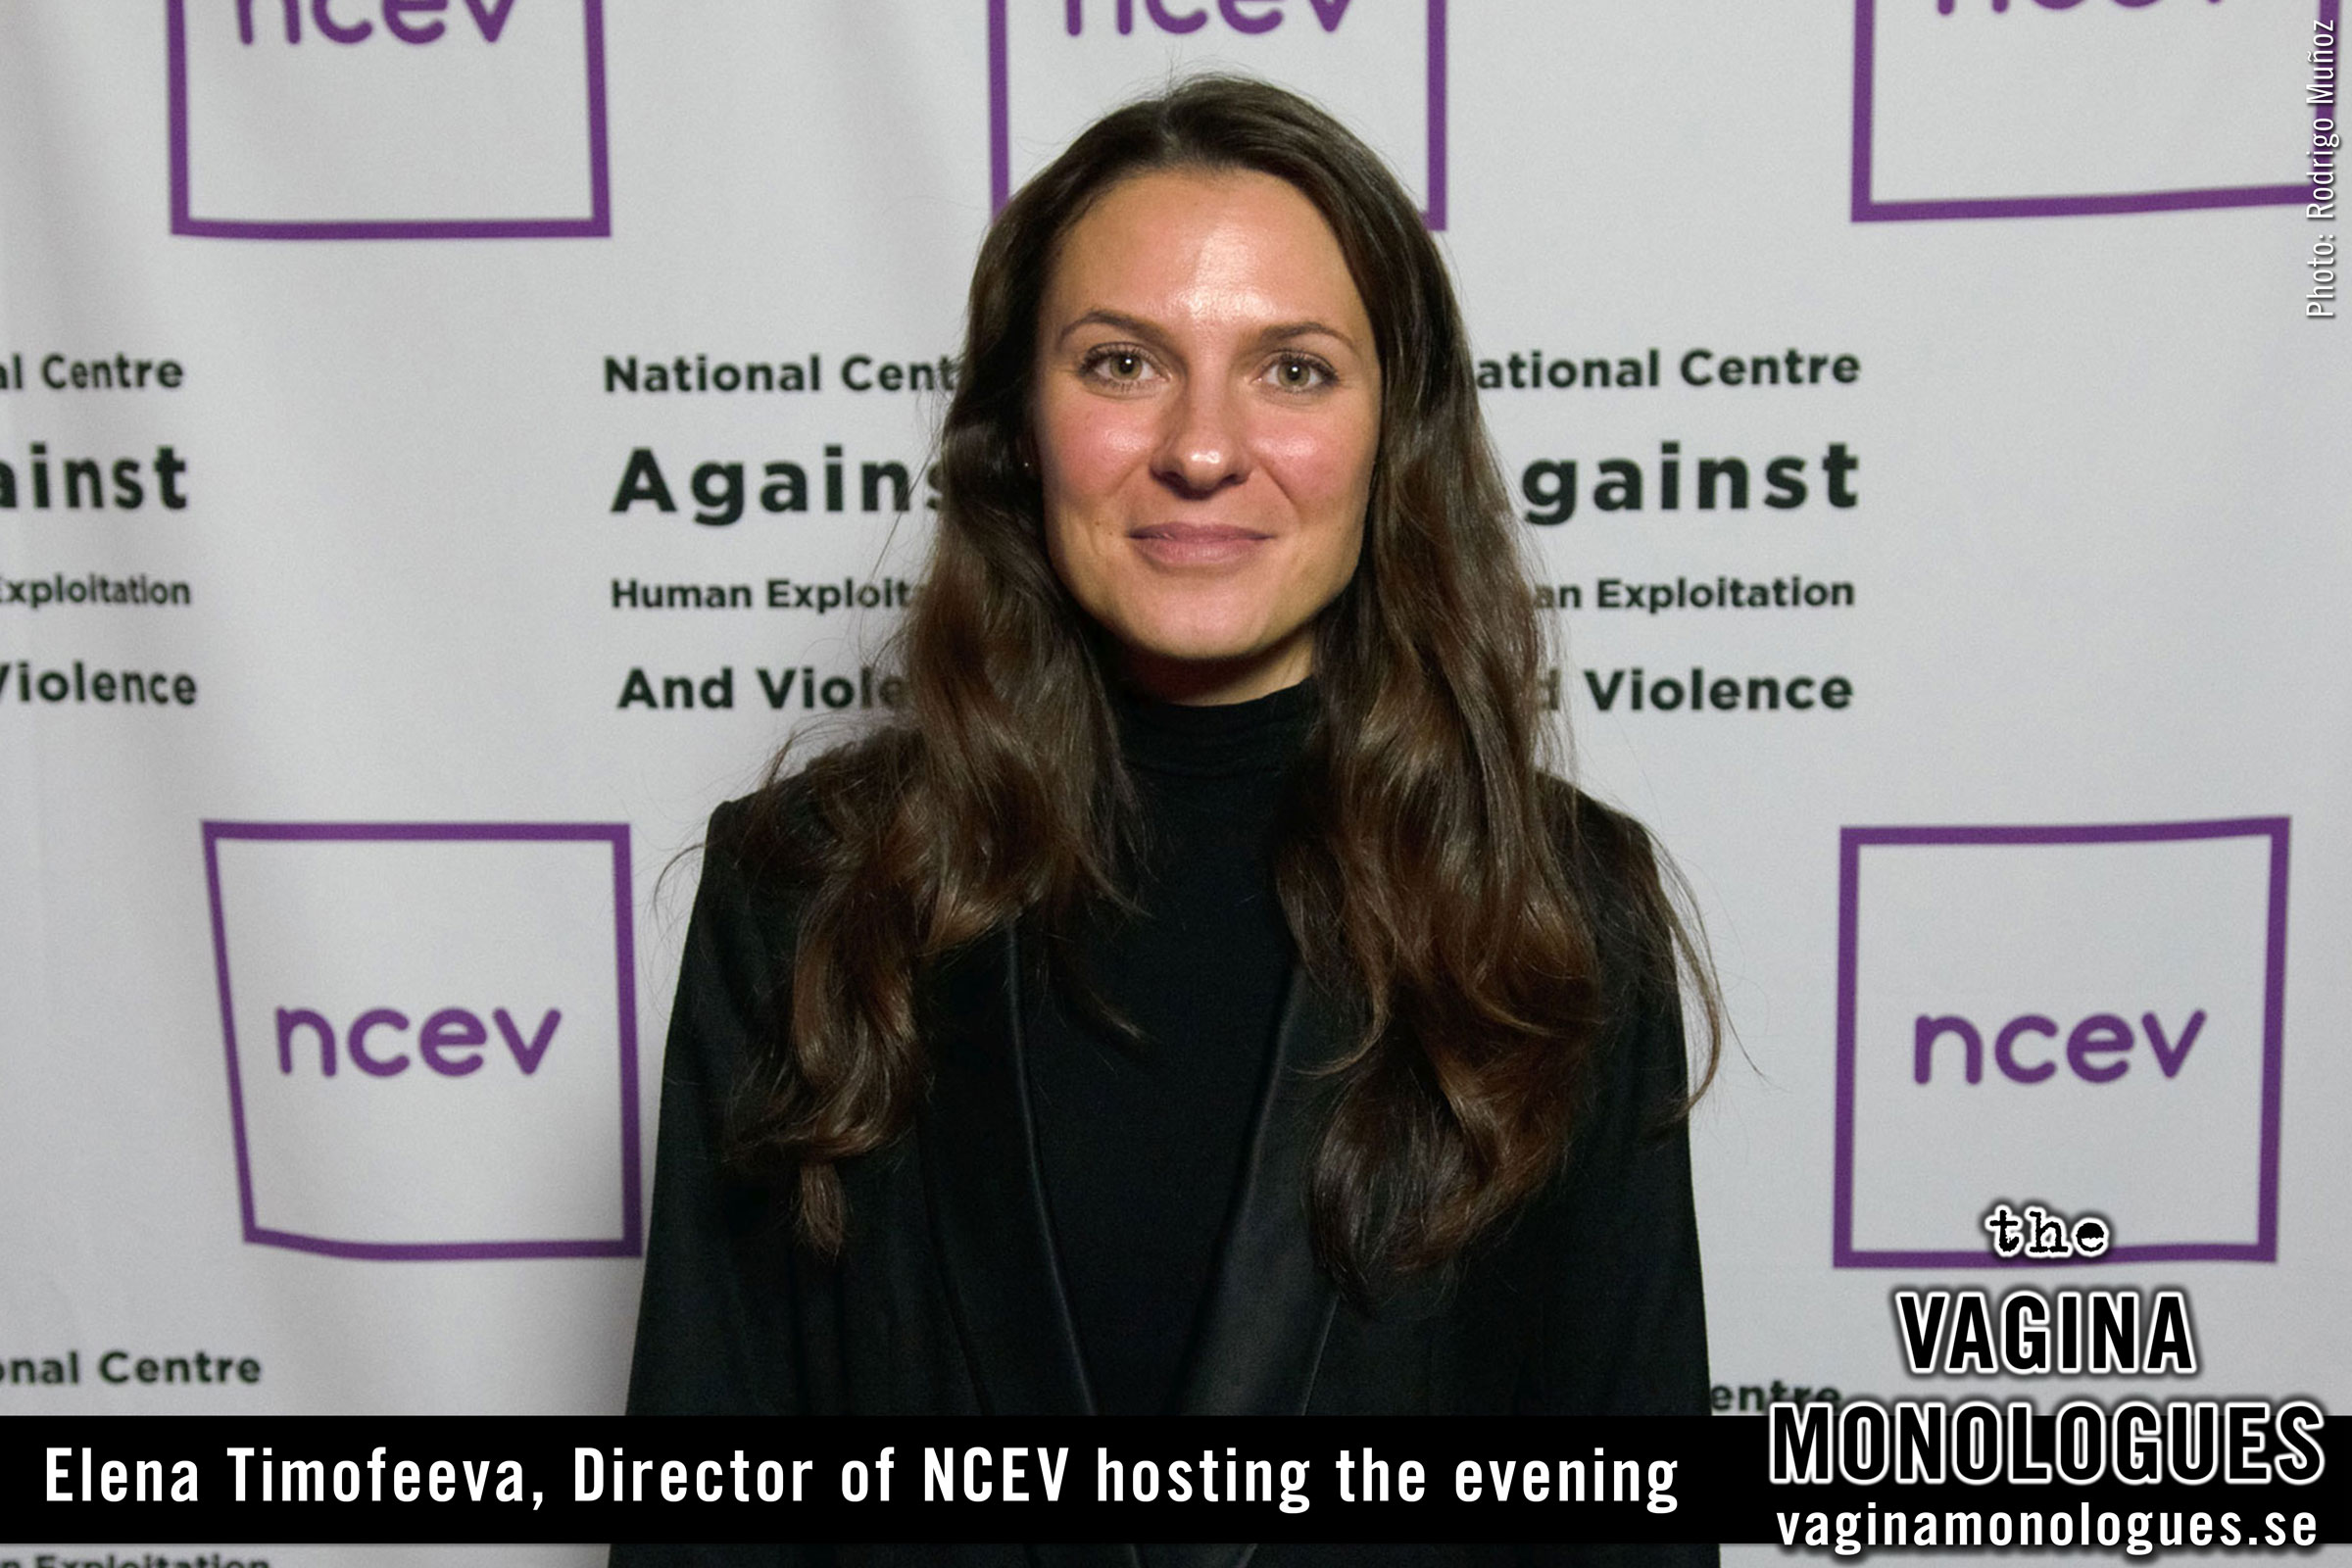 Elena Timofeeva, Director of NCEV hosting the evening